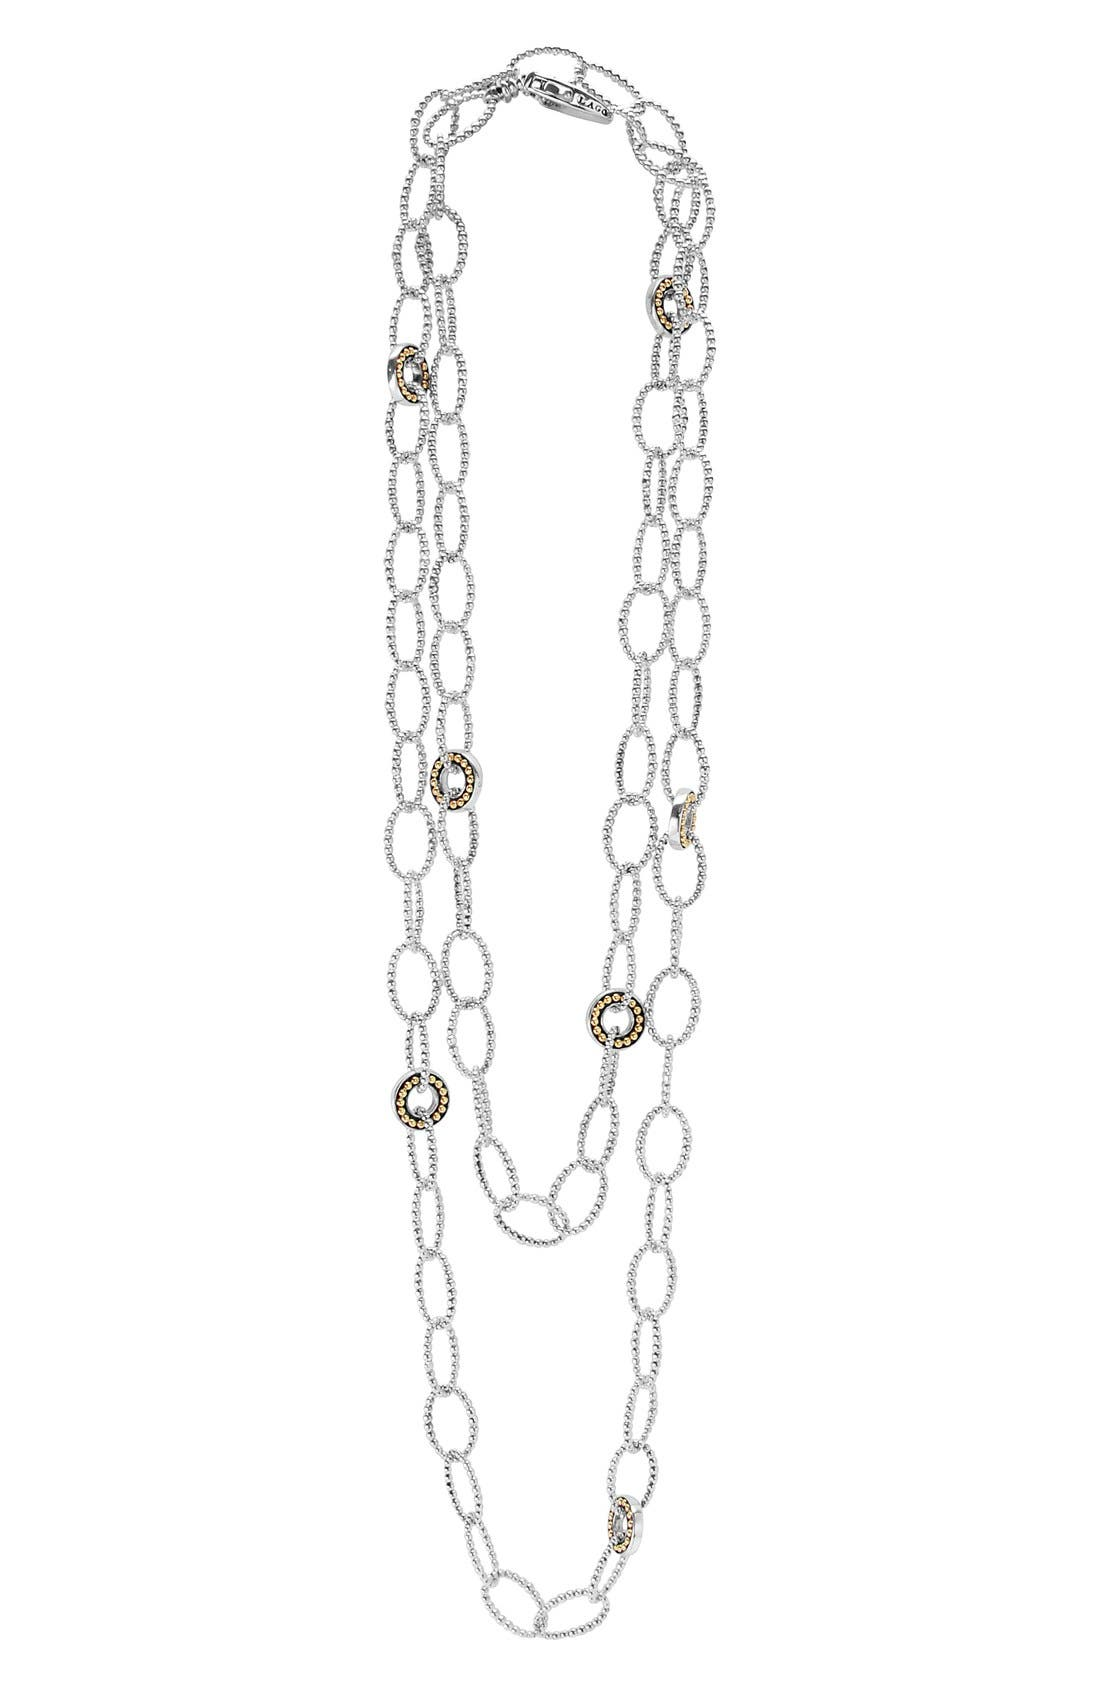 Main Image - LAGOS 'Enso' Long Station Necklace